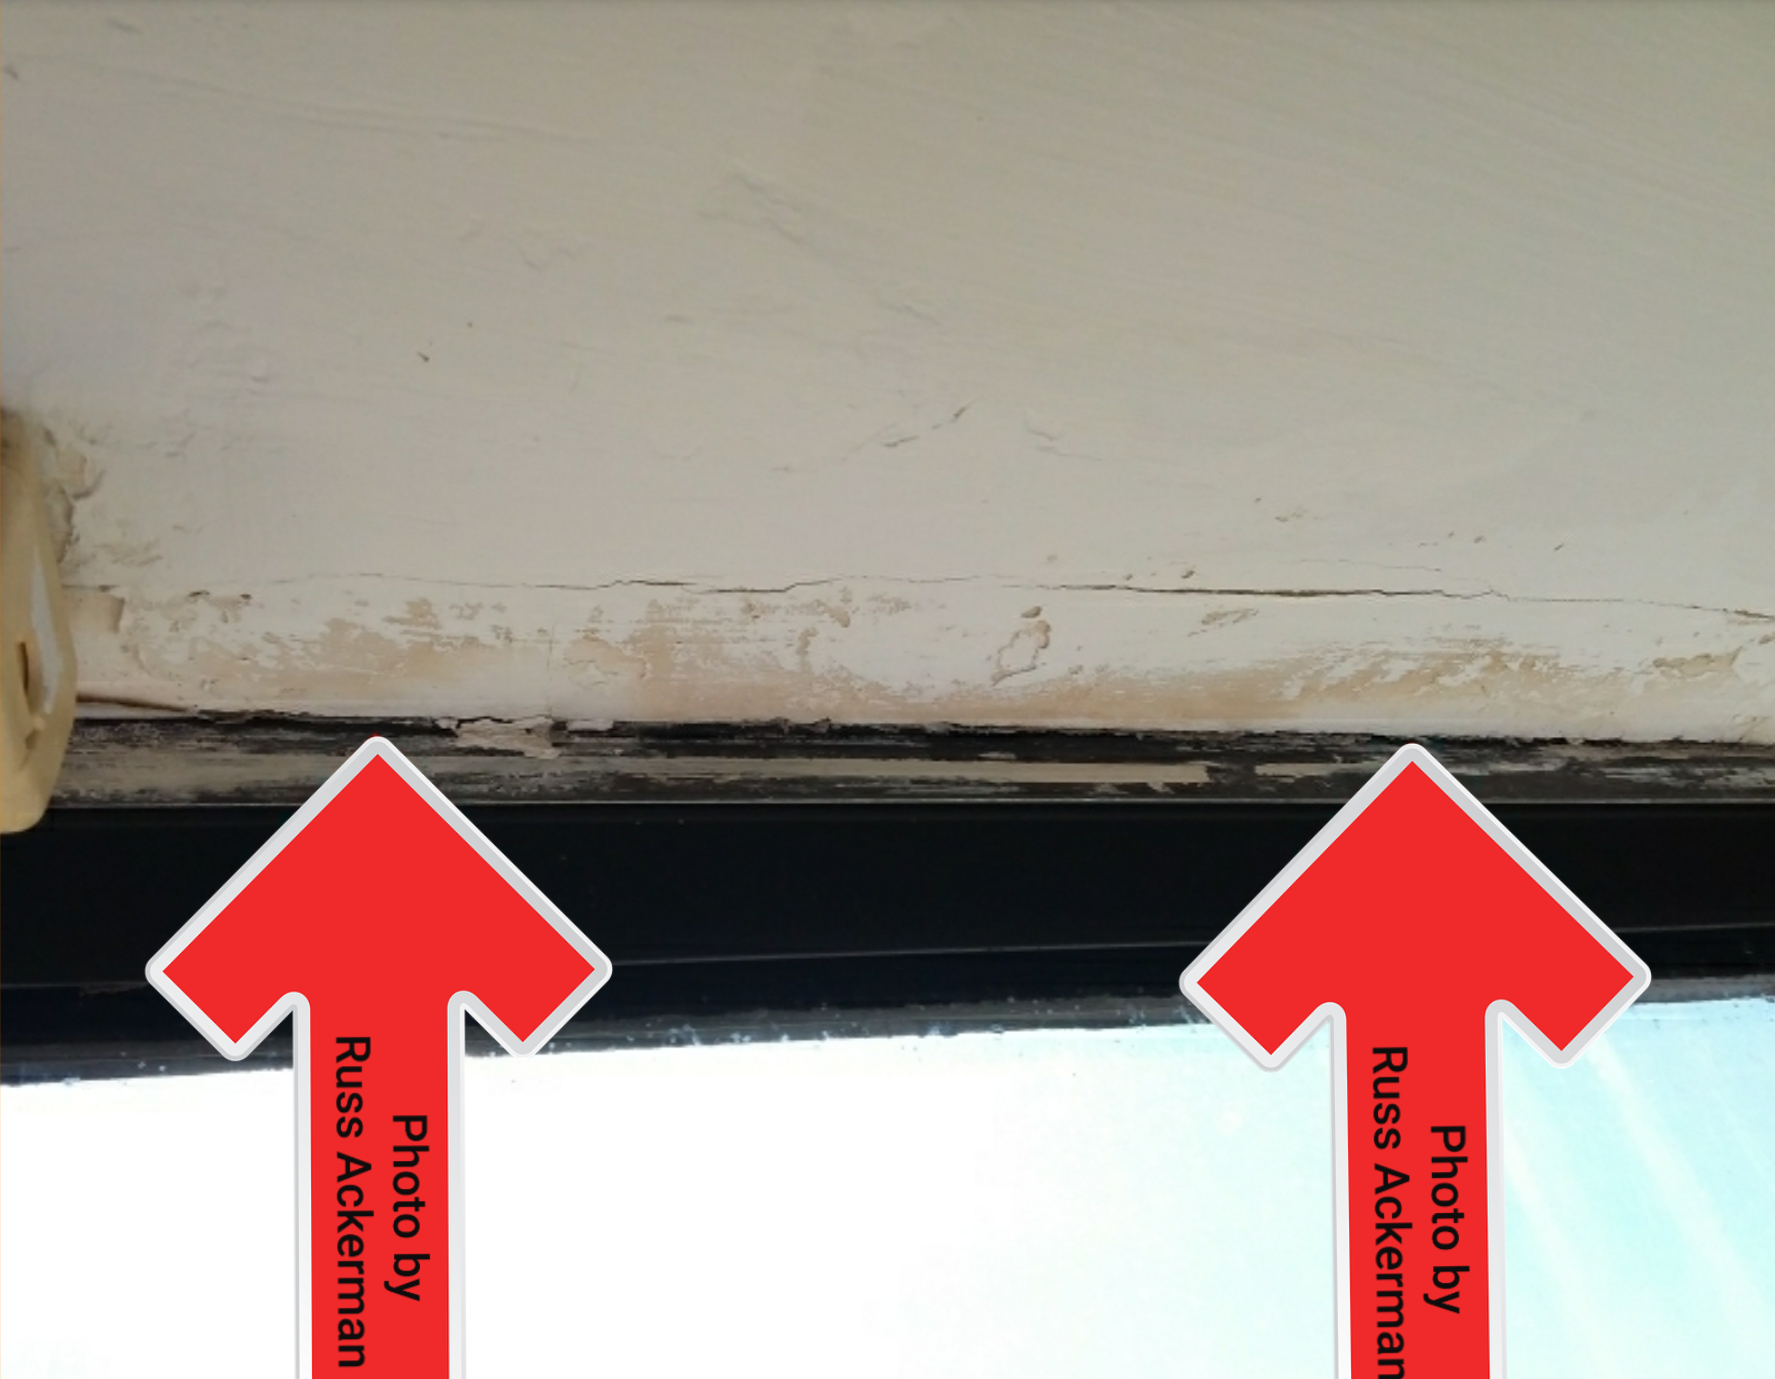 Stachybotrys or Black Mold was found inside the drywall of this leaking window. All leaks need repair and all mold needs remediation.